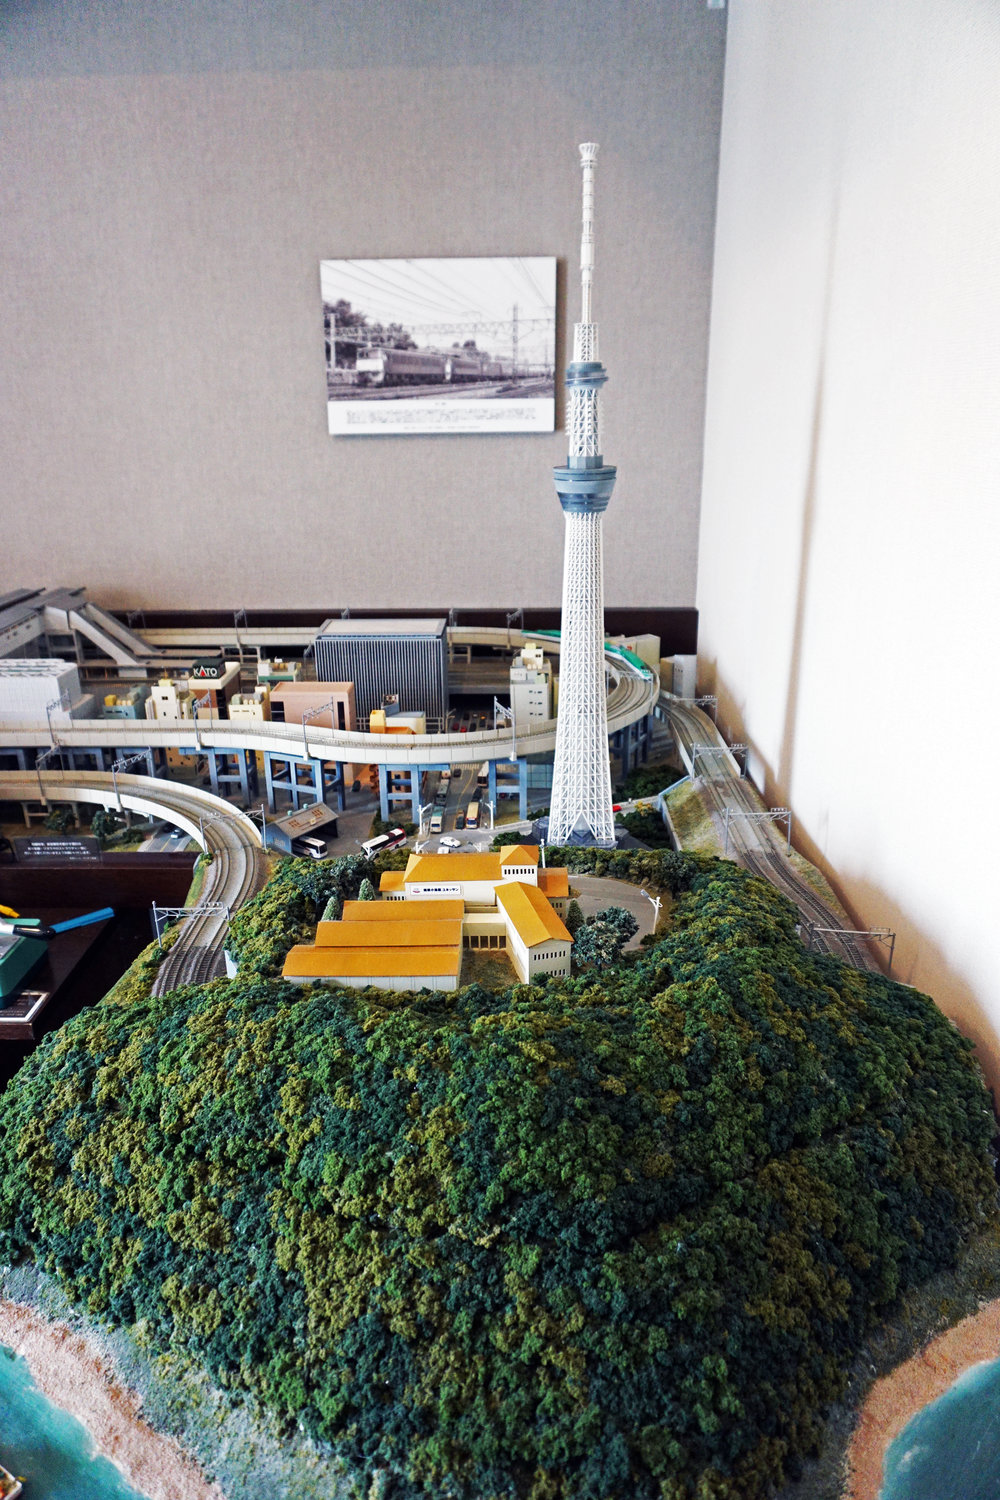 Akihabara Washington Hotel - Train Room Model .JPG